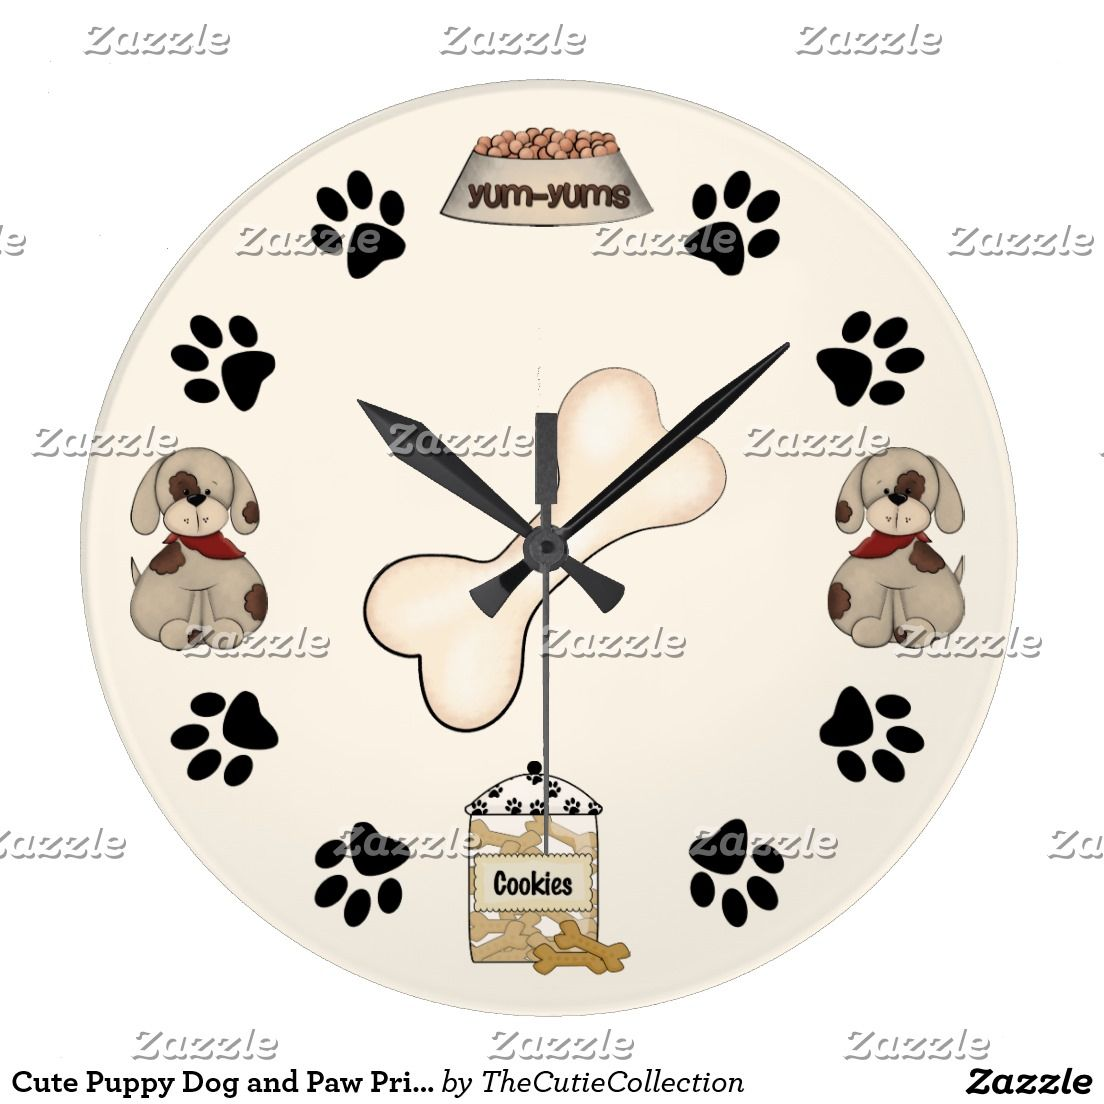 Cute Puppy Dogs, Paw Prints and Bone Large Clock Zazzle